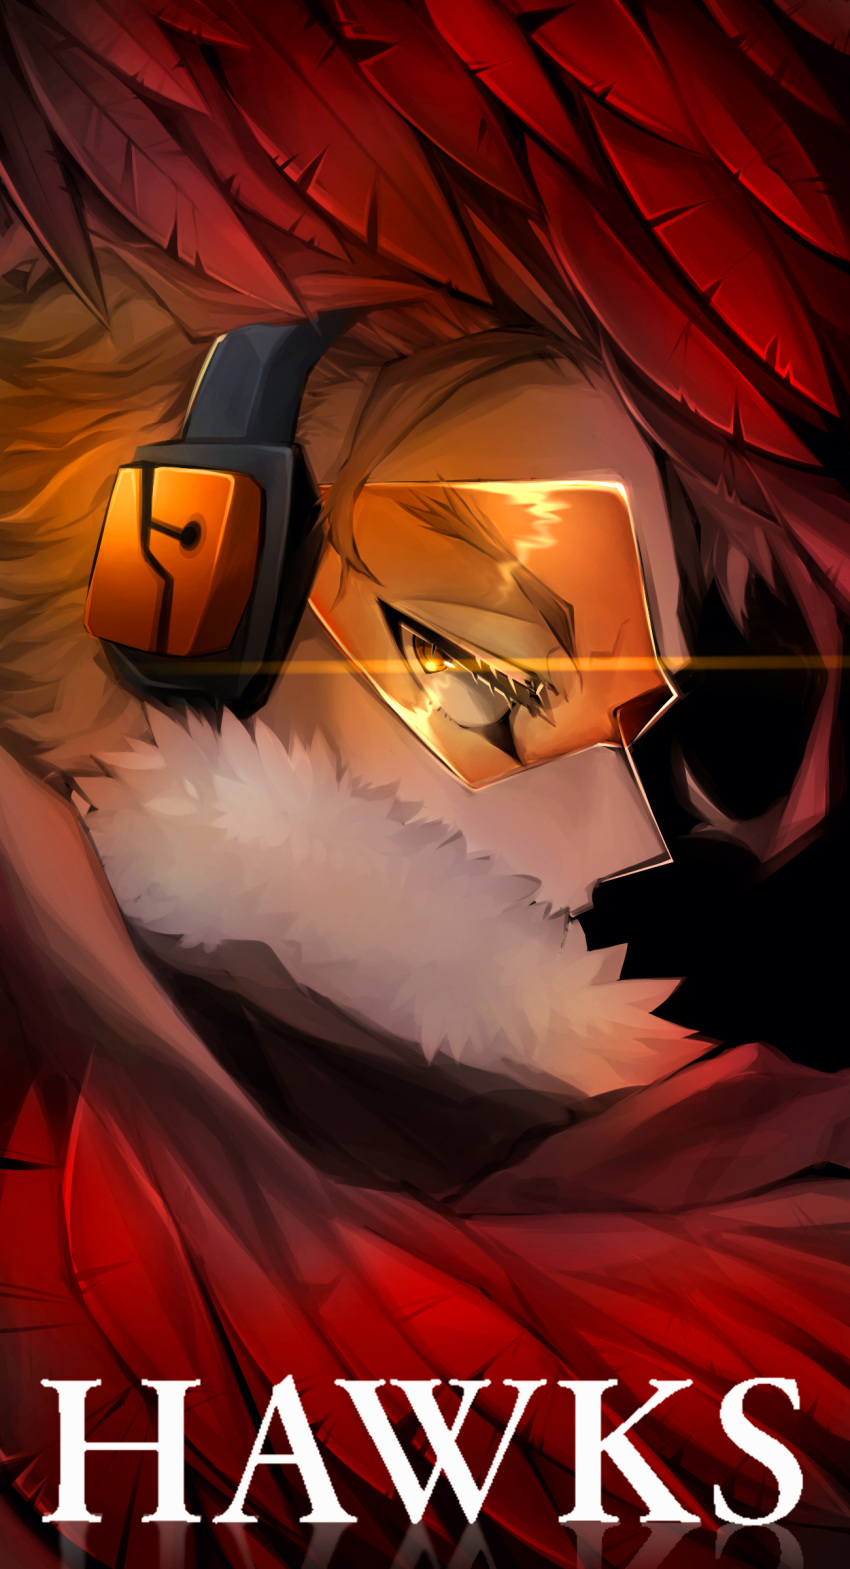 1boy absurdres blonde_hair boku_no_hero_academia character_name commentary english_commentary face facial_mark feathered_wings feathers fur_trim half-closed_eyes hawks_(boku_no_hero_academia) headphones highres looking_back male_focus mochiboni orange-tinted_eyewear orange_eyes profile red_feathers red_wings short_hair sideways_glance slit_pupils solo tinted_eyewear wings